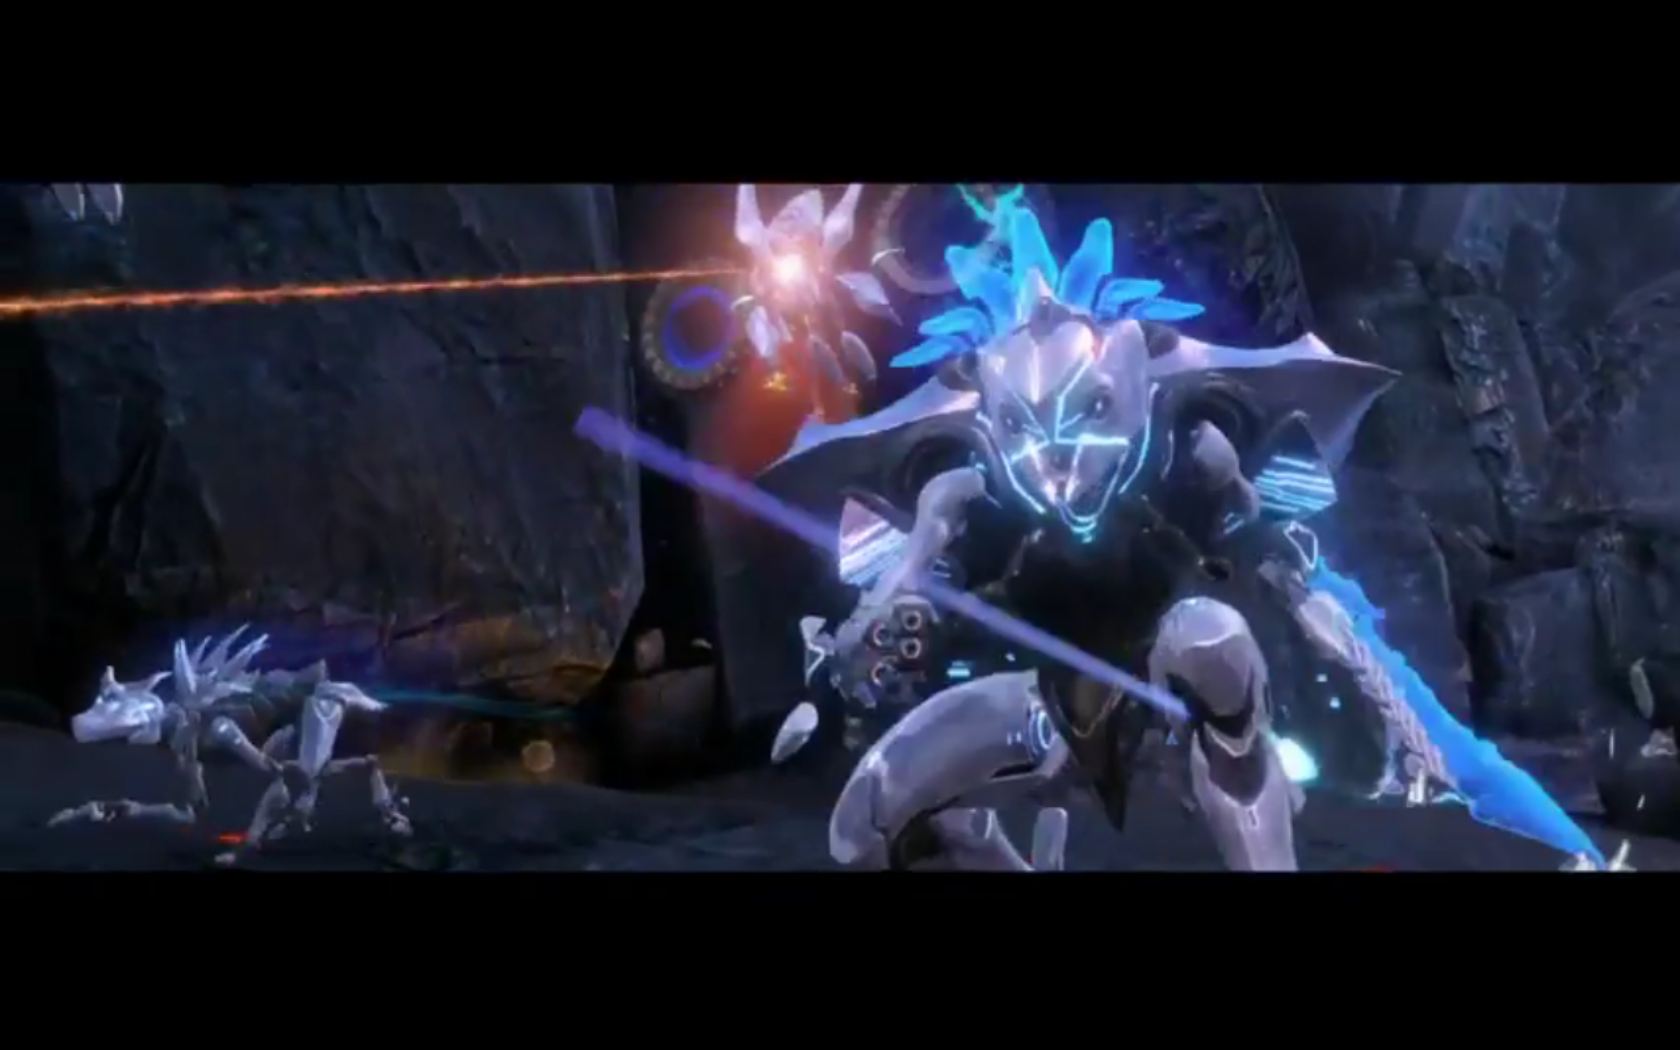 Image halo 4 trailer halo nation the halo - Halo 4 pictures ...